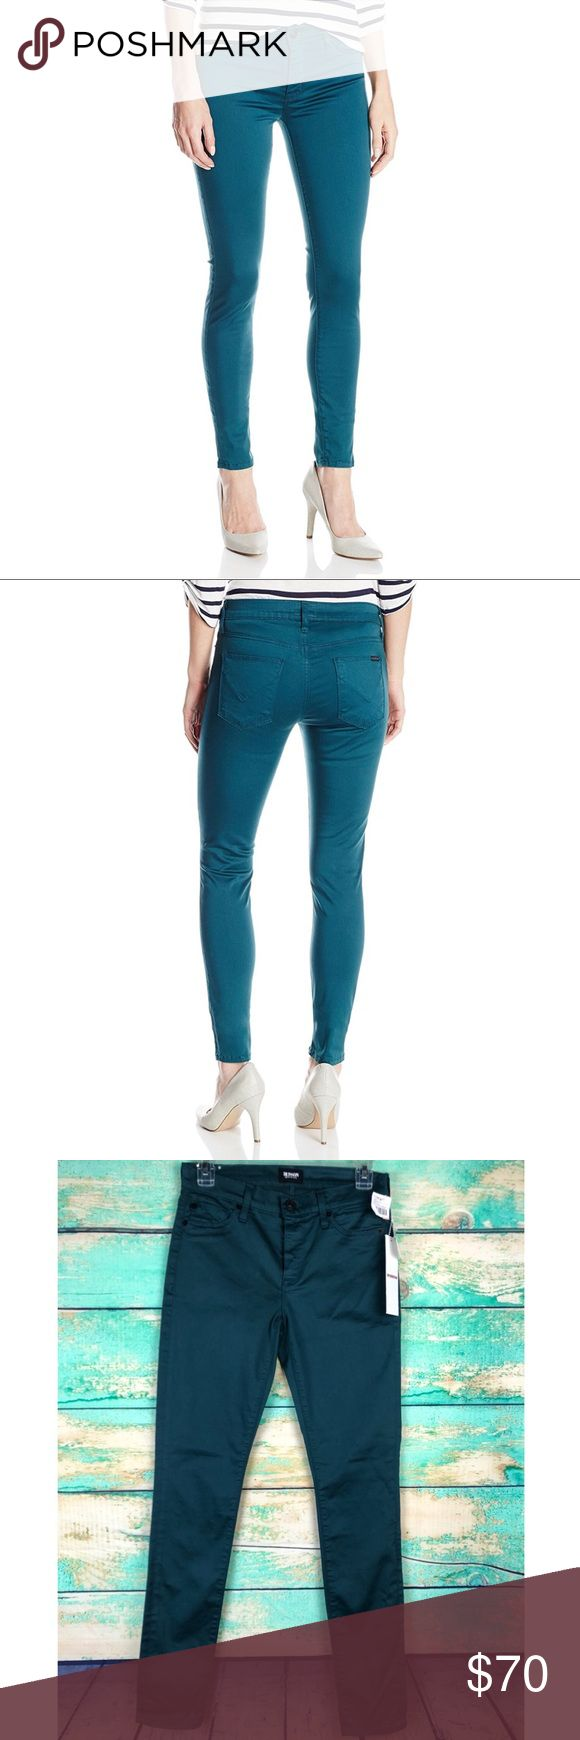 """NWT Hudson Nico Mid-Rise Stretch Skinny Jean DETAILS & CARE Skinny jeans crafted from ultra-stretchy denim are cast in a saturated teal wash accented by gunmetal hardware and a monochrome brand patch on the back pocket. 30"""" inseam; 9"""" front rise; 13.75"""" waist Zip fly with button closure. Faux front pockets; coin pocket; back pockets. 92% cotton, 4% polyester, 4% Lycra® spandex. Machine wash cold, tumble dry medium. By Hudson Jeans; made in the USA. Color: Graphite Teal.  New with tags- no…"""